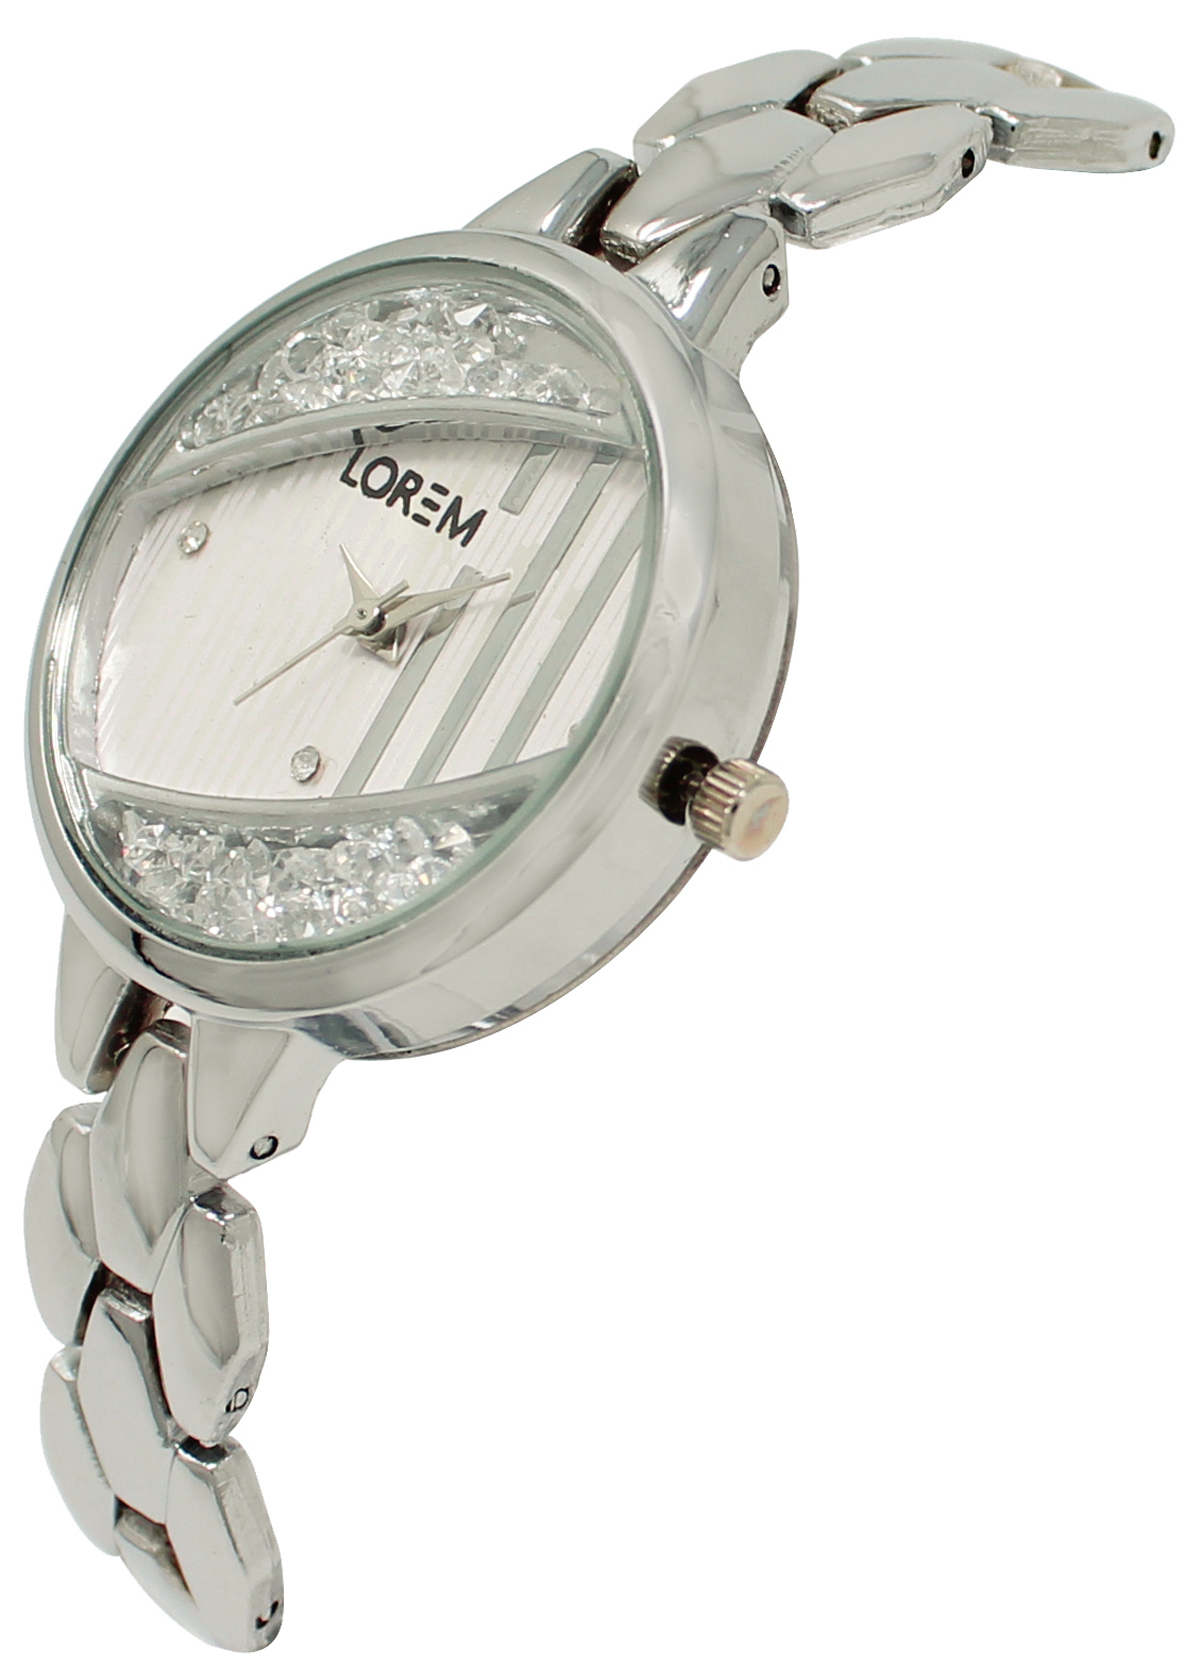 LOREM NEW Analogue Fashion Wrist Watch For Women & Girls